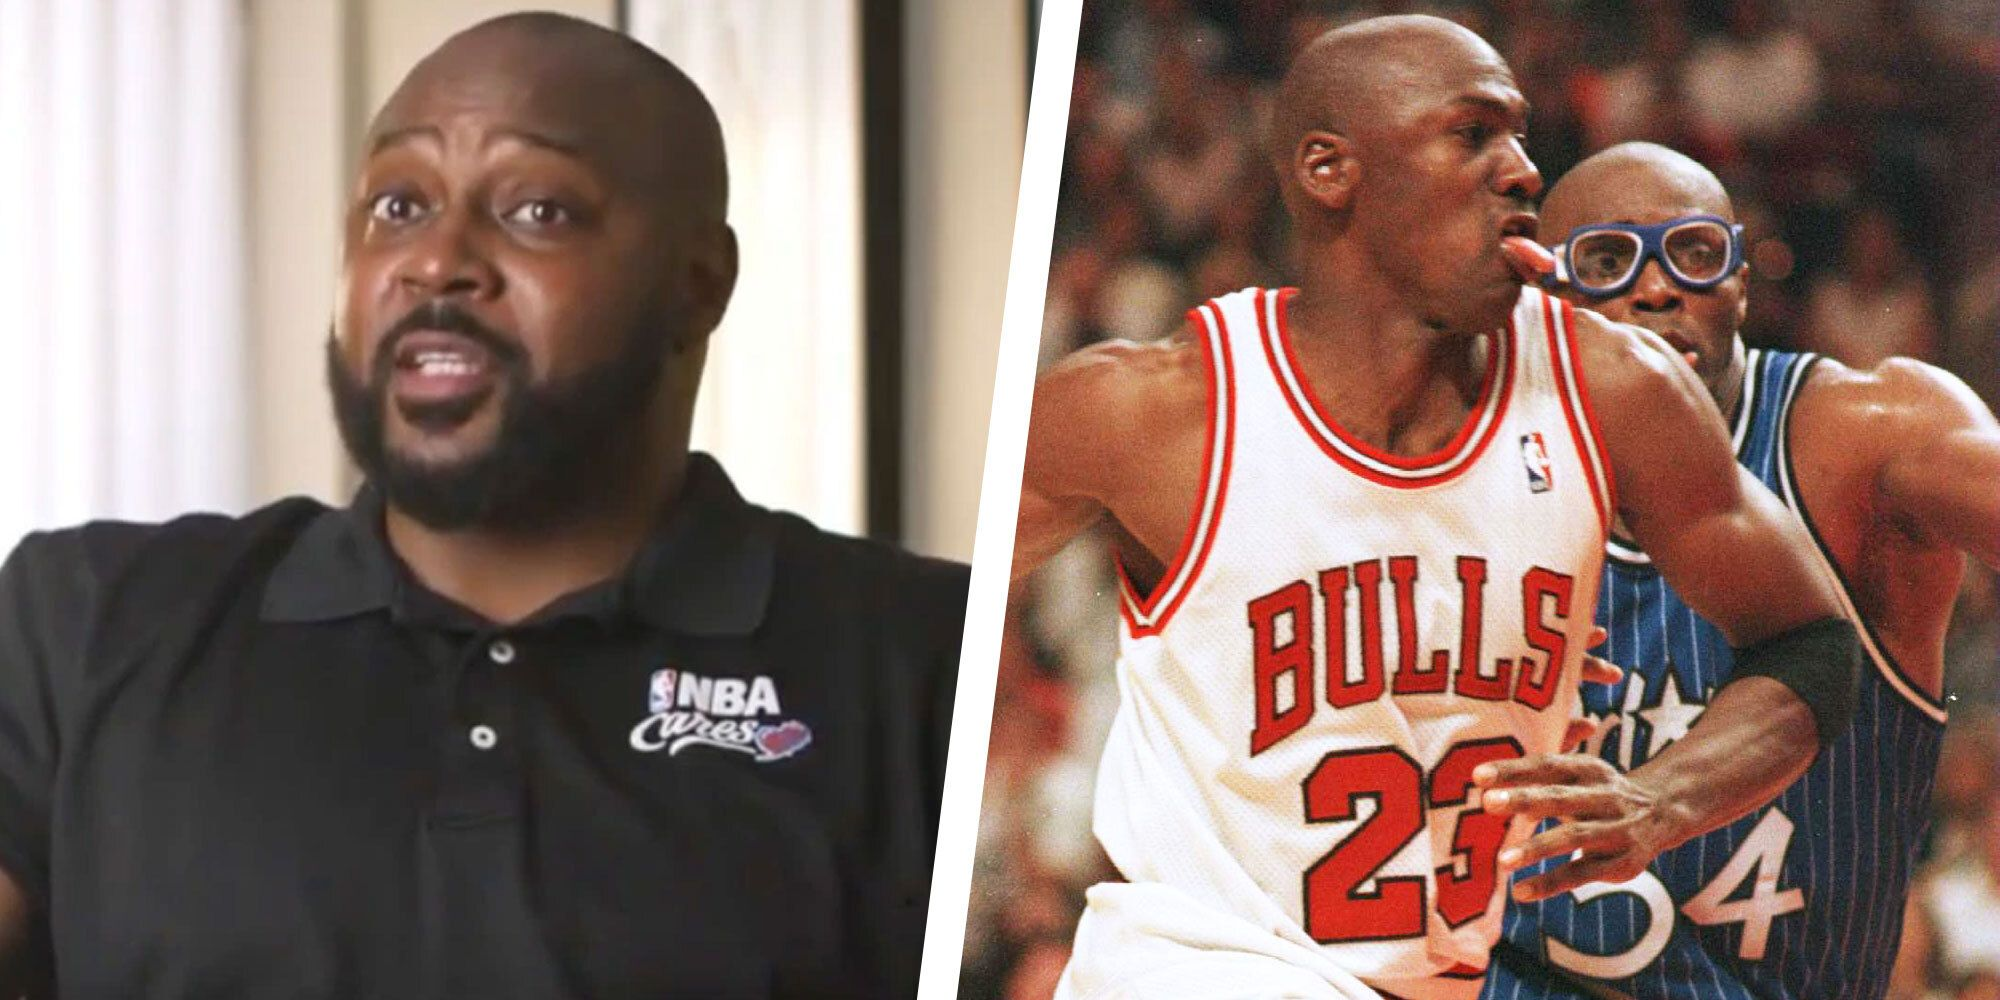 Why Horace Grant Is Angry at Michael